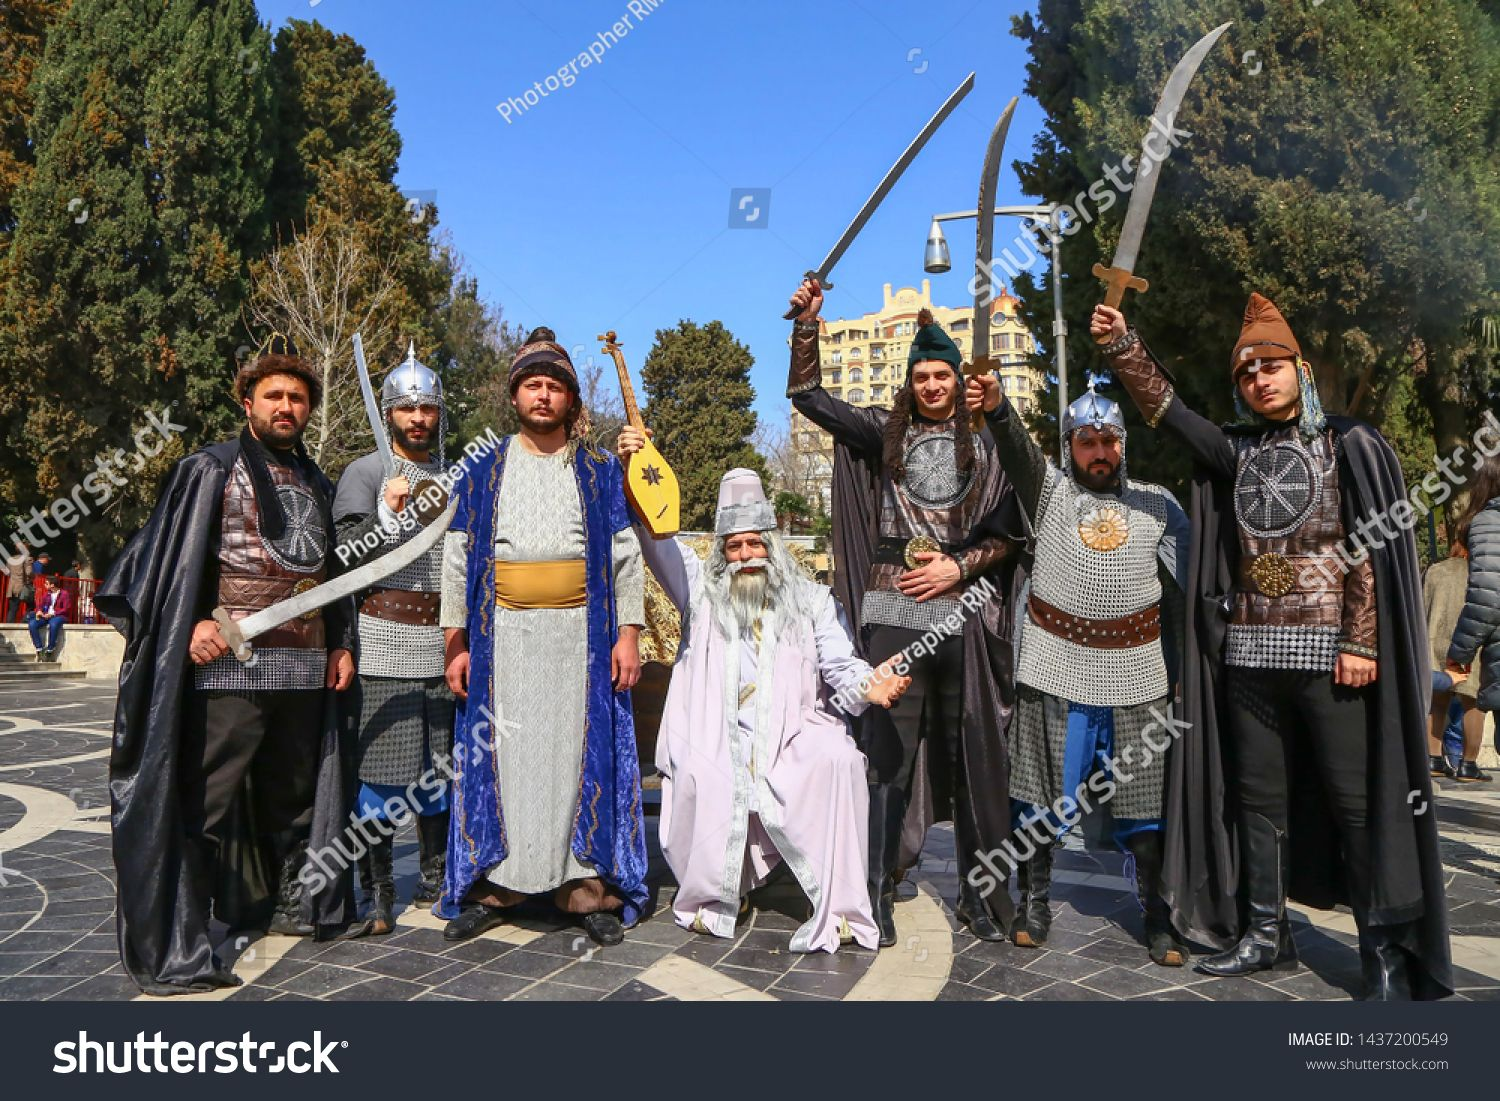 Novruz Holiday In Azerbaijan Artists Who Dance In The National Costume Which Is A Reflection Of The Wheat Grass In The Summ In 2020 Photo Editing Stock Photos Artist